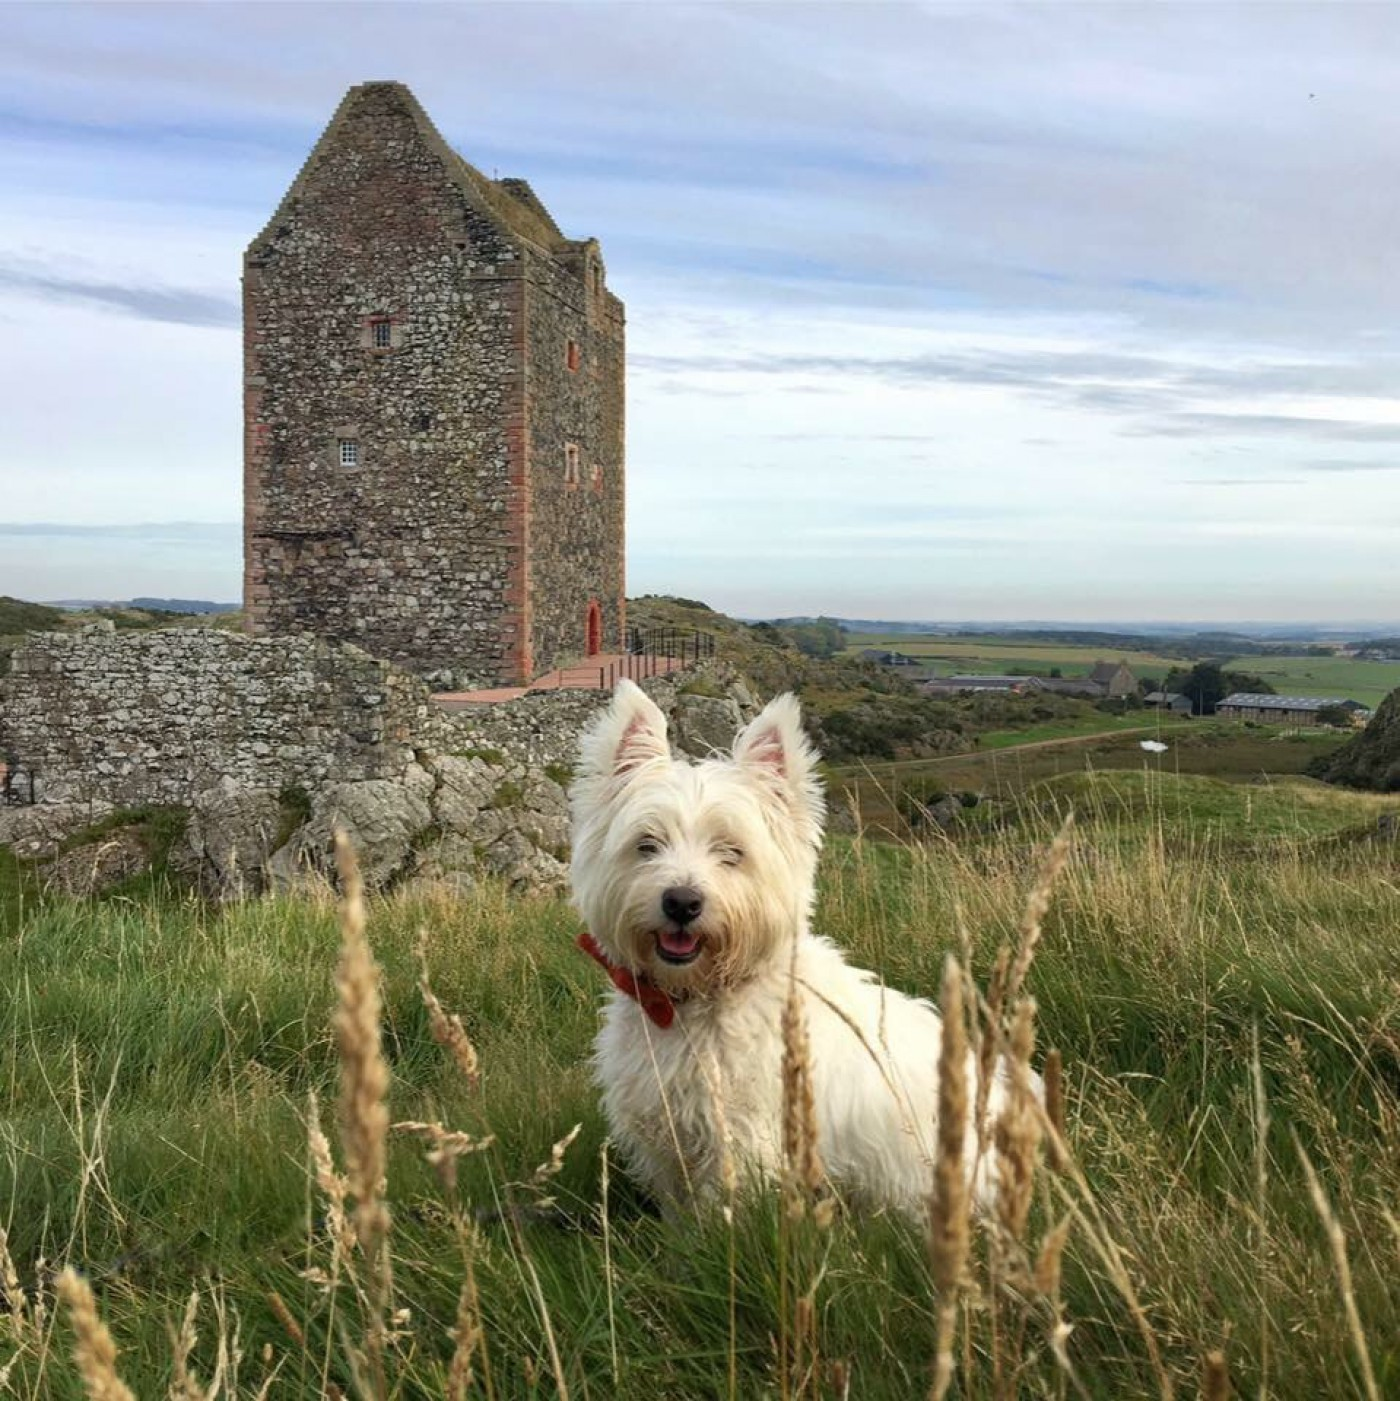 Scotland with the Wee White Dug